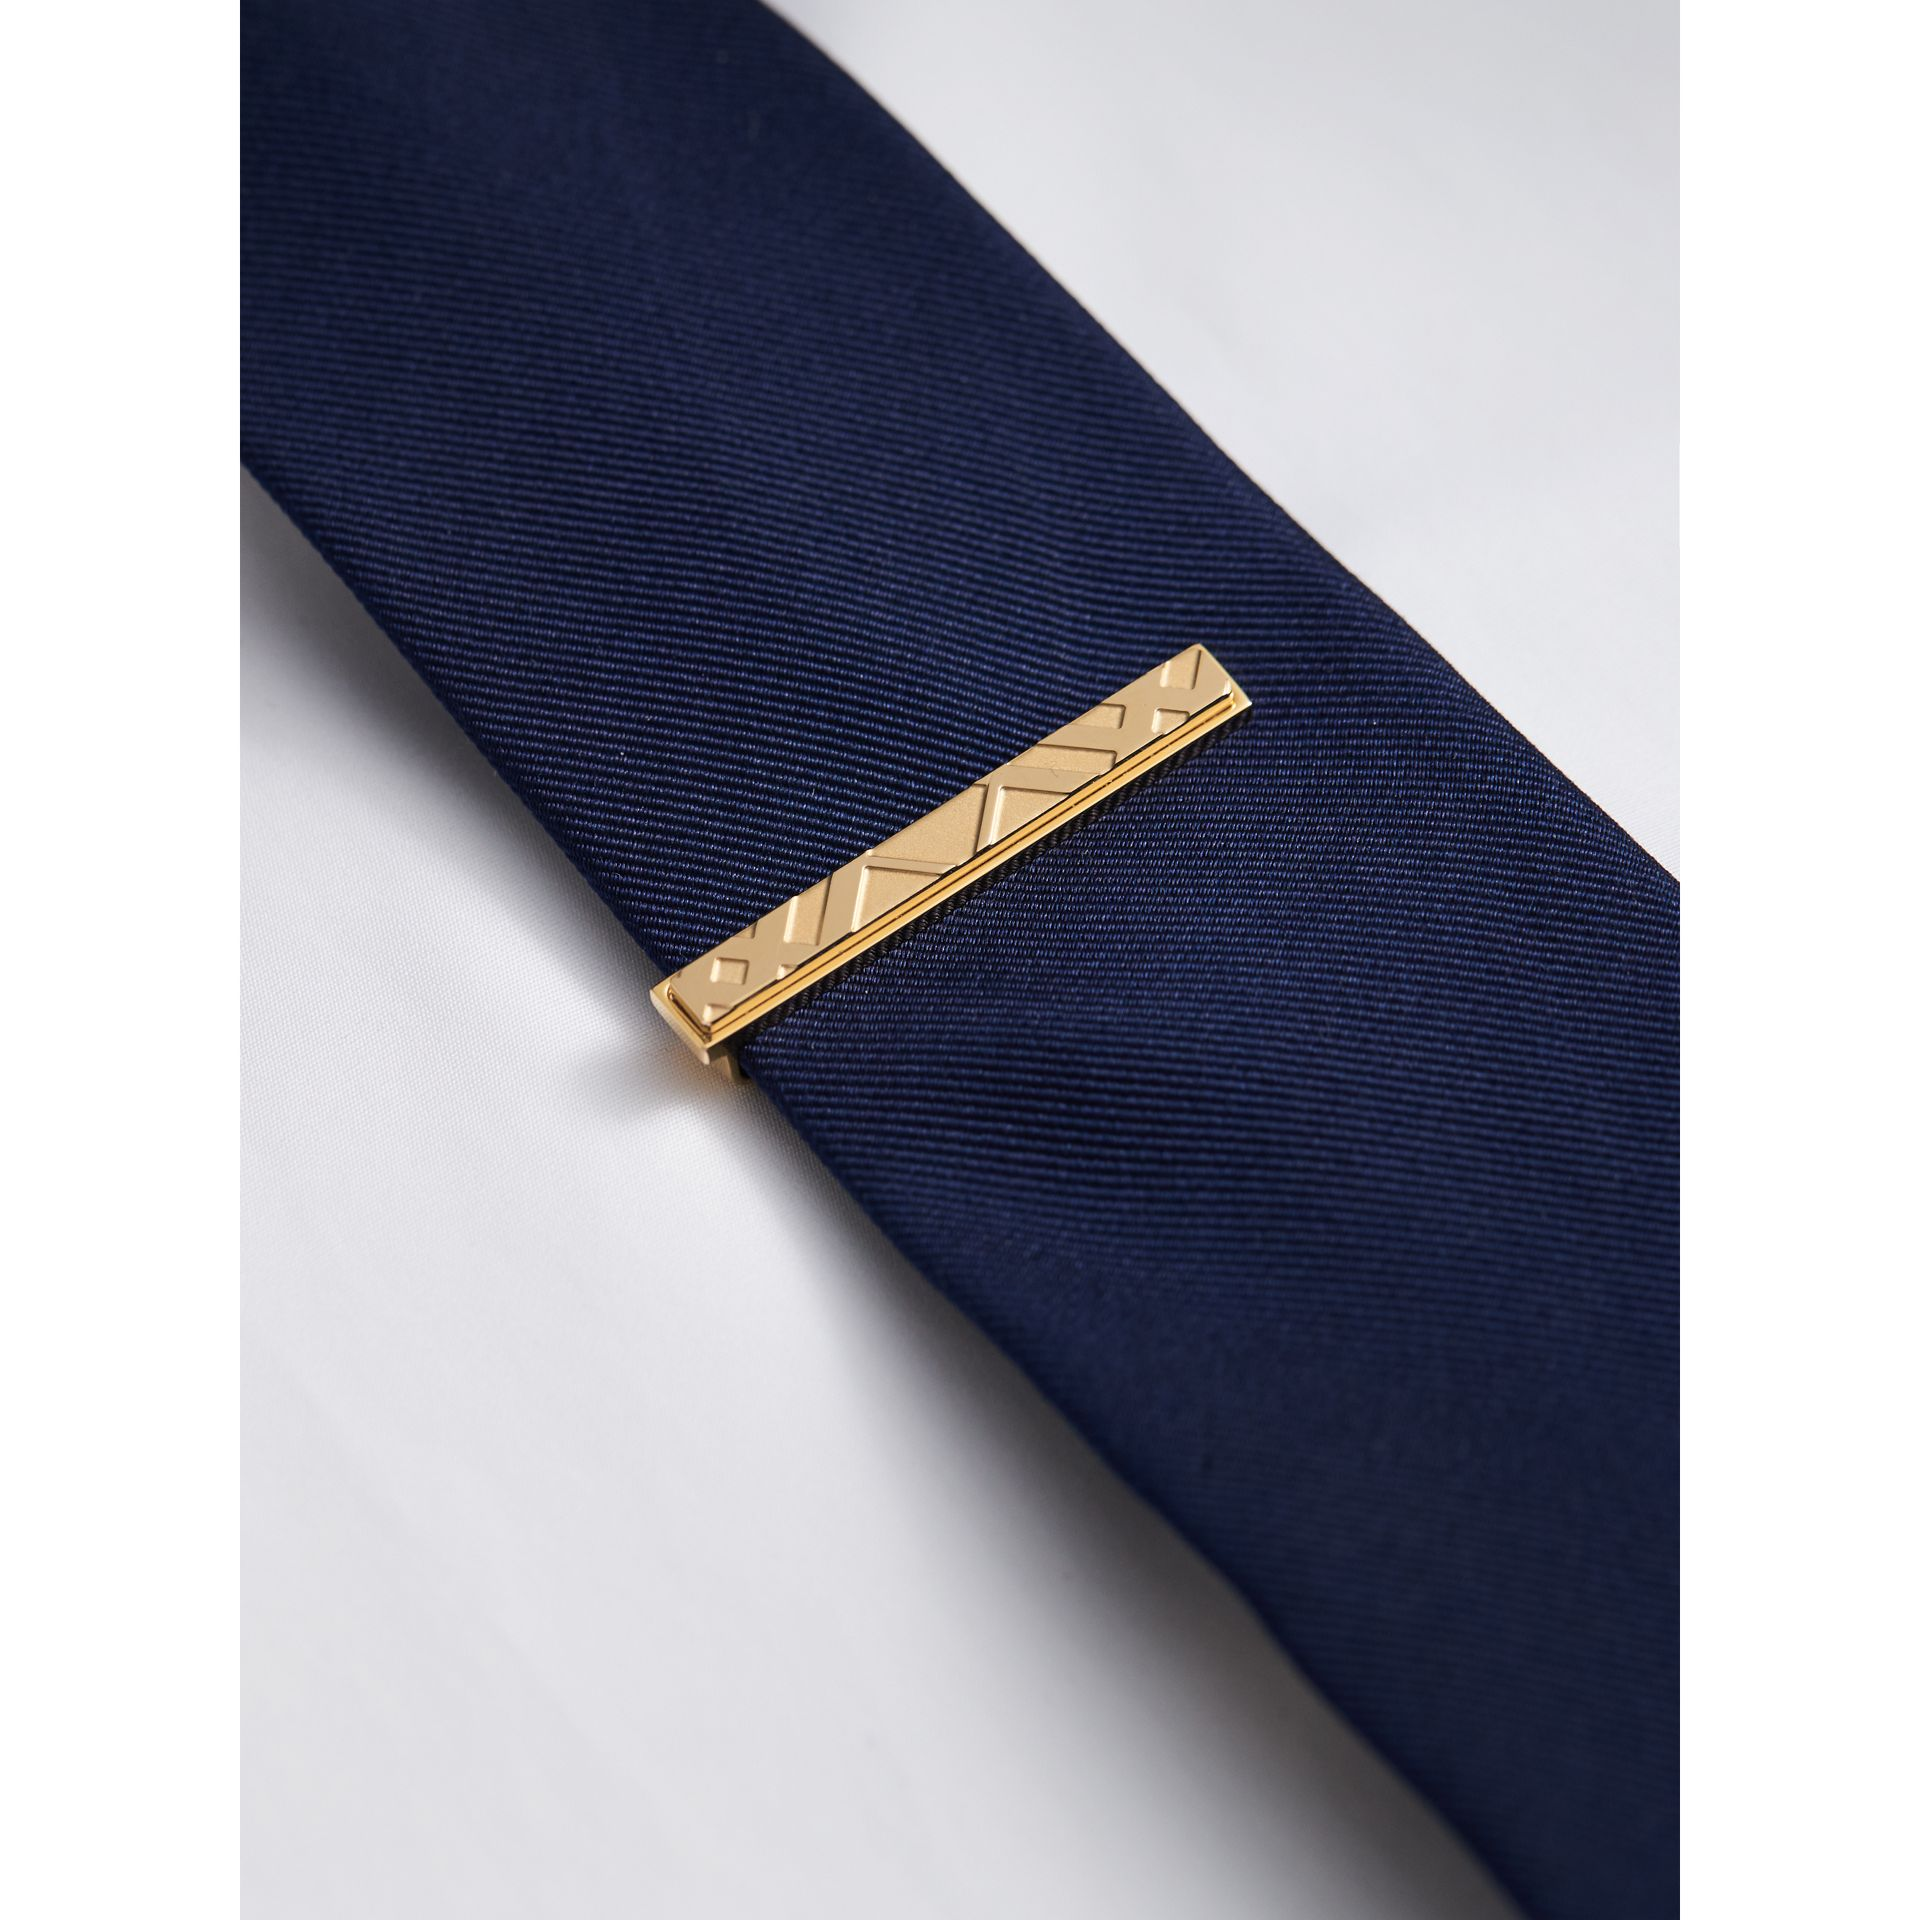 Check-engraved Tie Bar in Pale Gold - Men | Burberry - gallery image 3